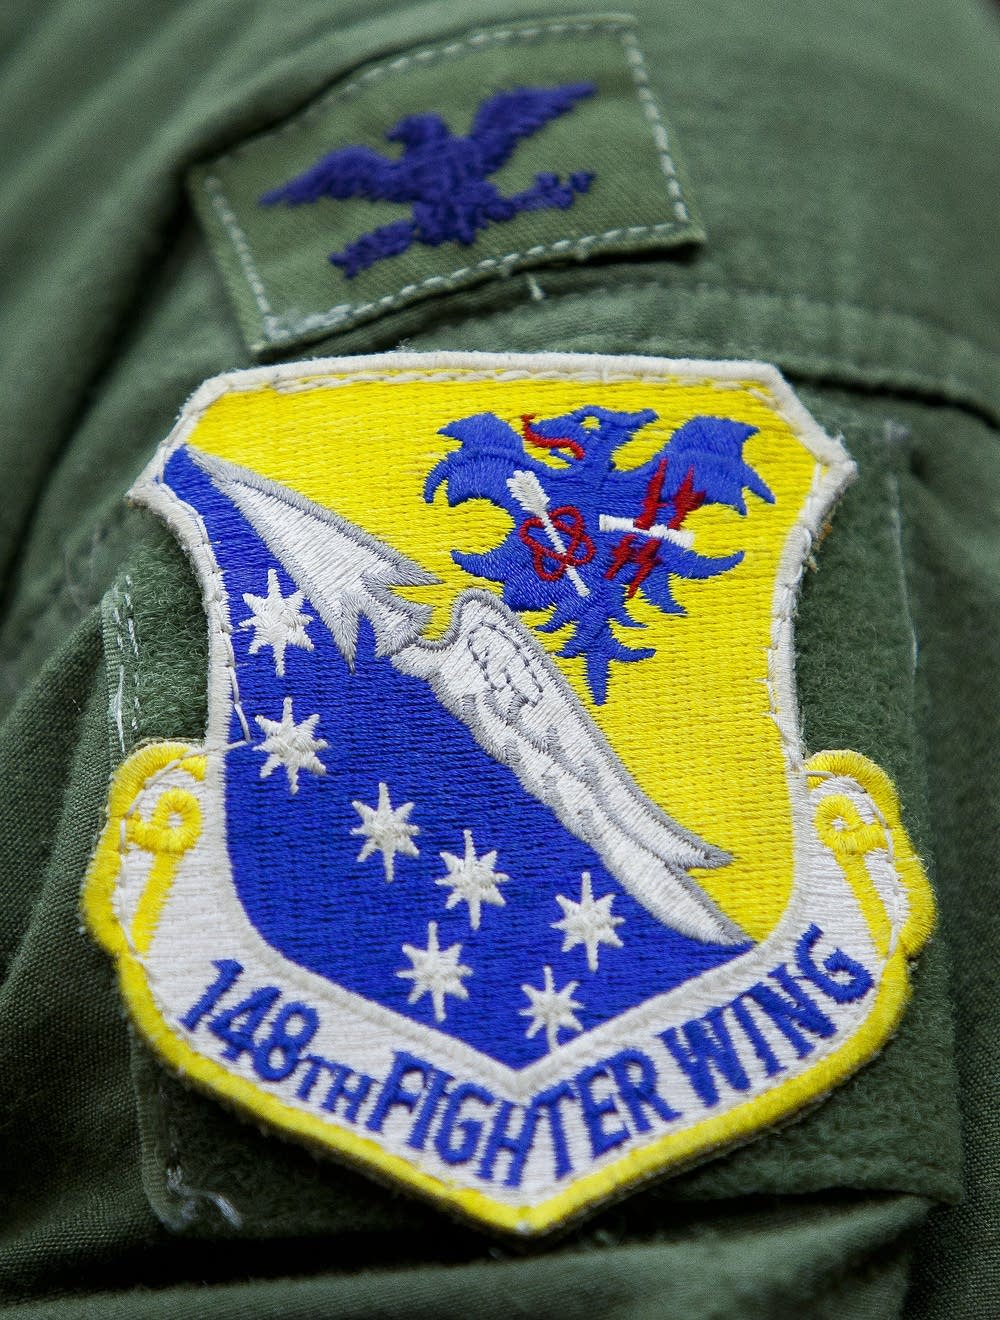 148th Fighter Wing patch